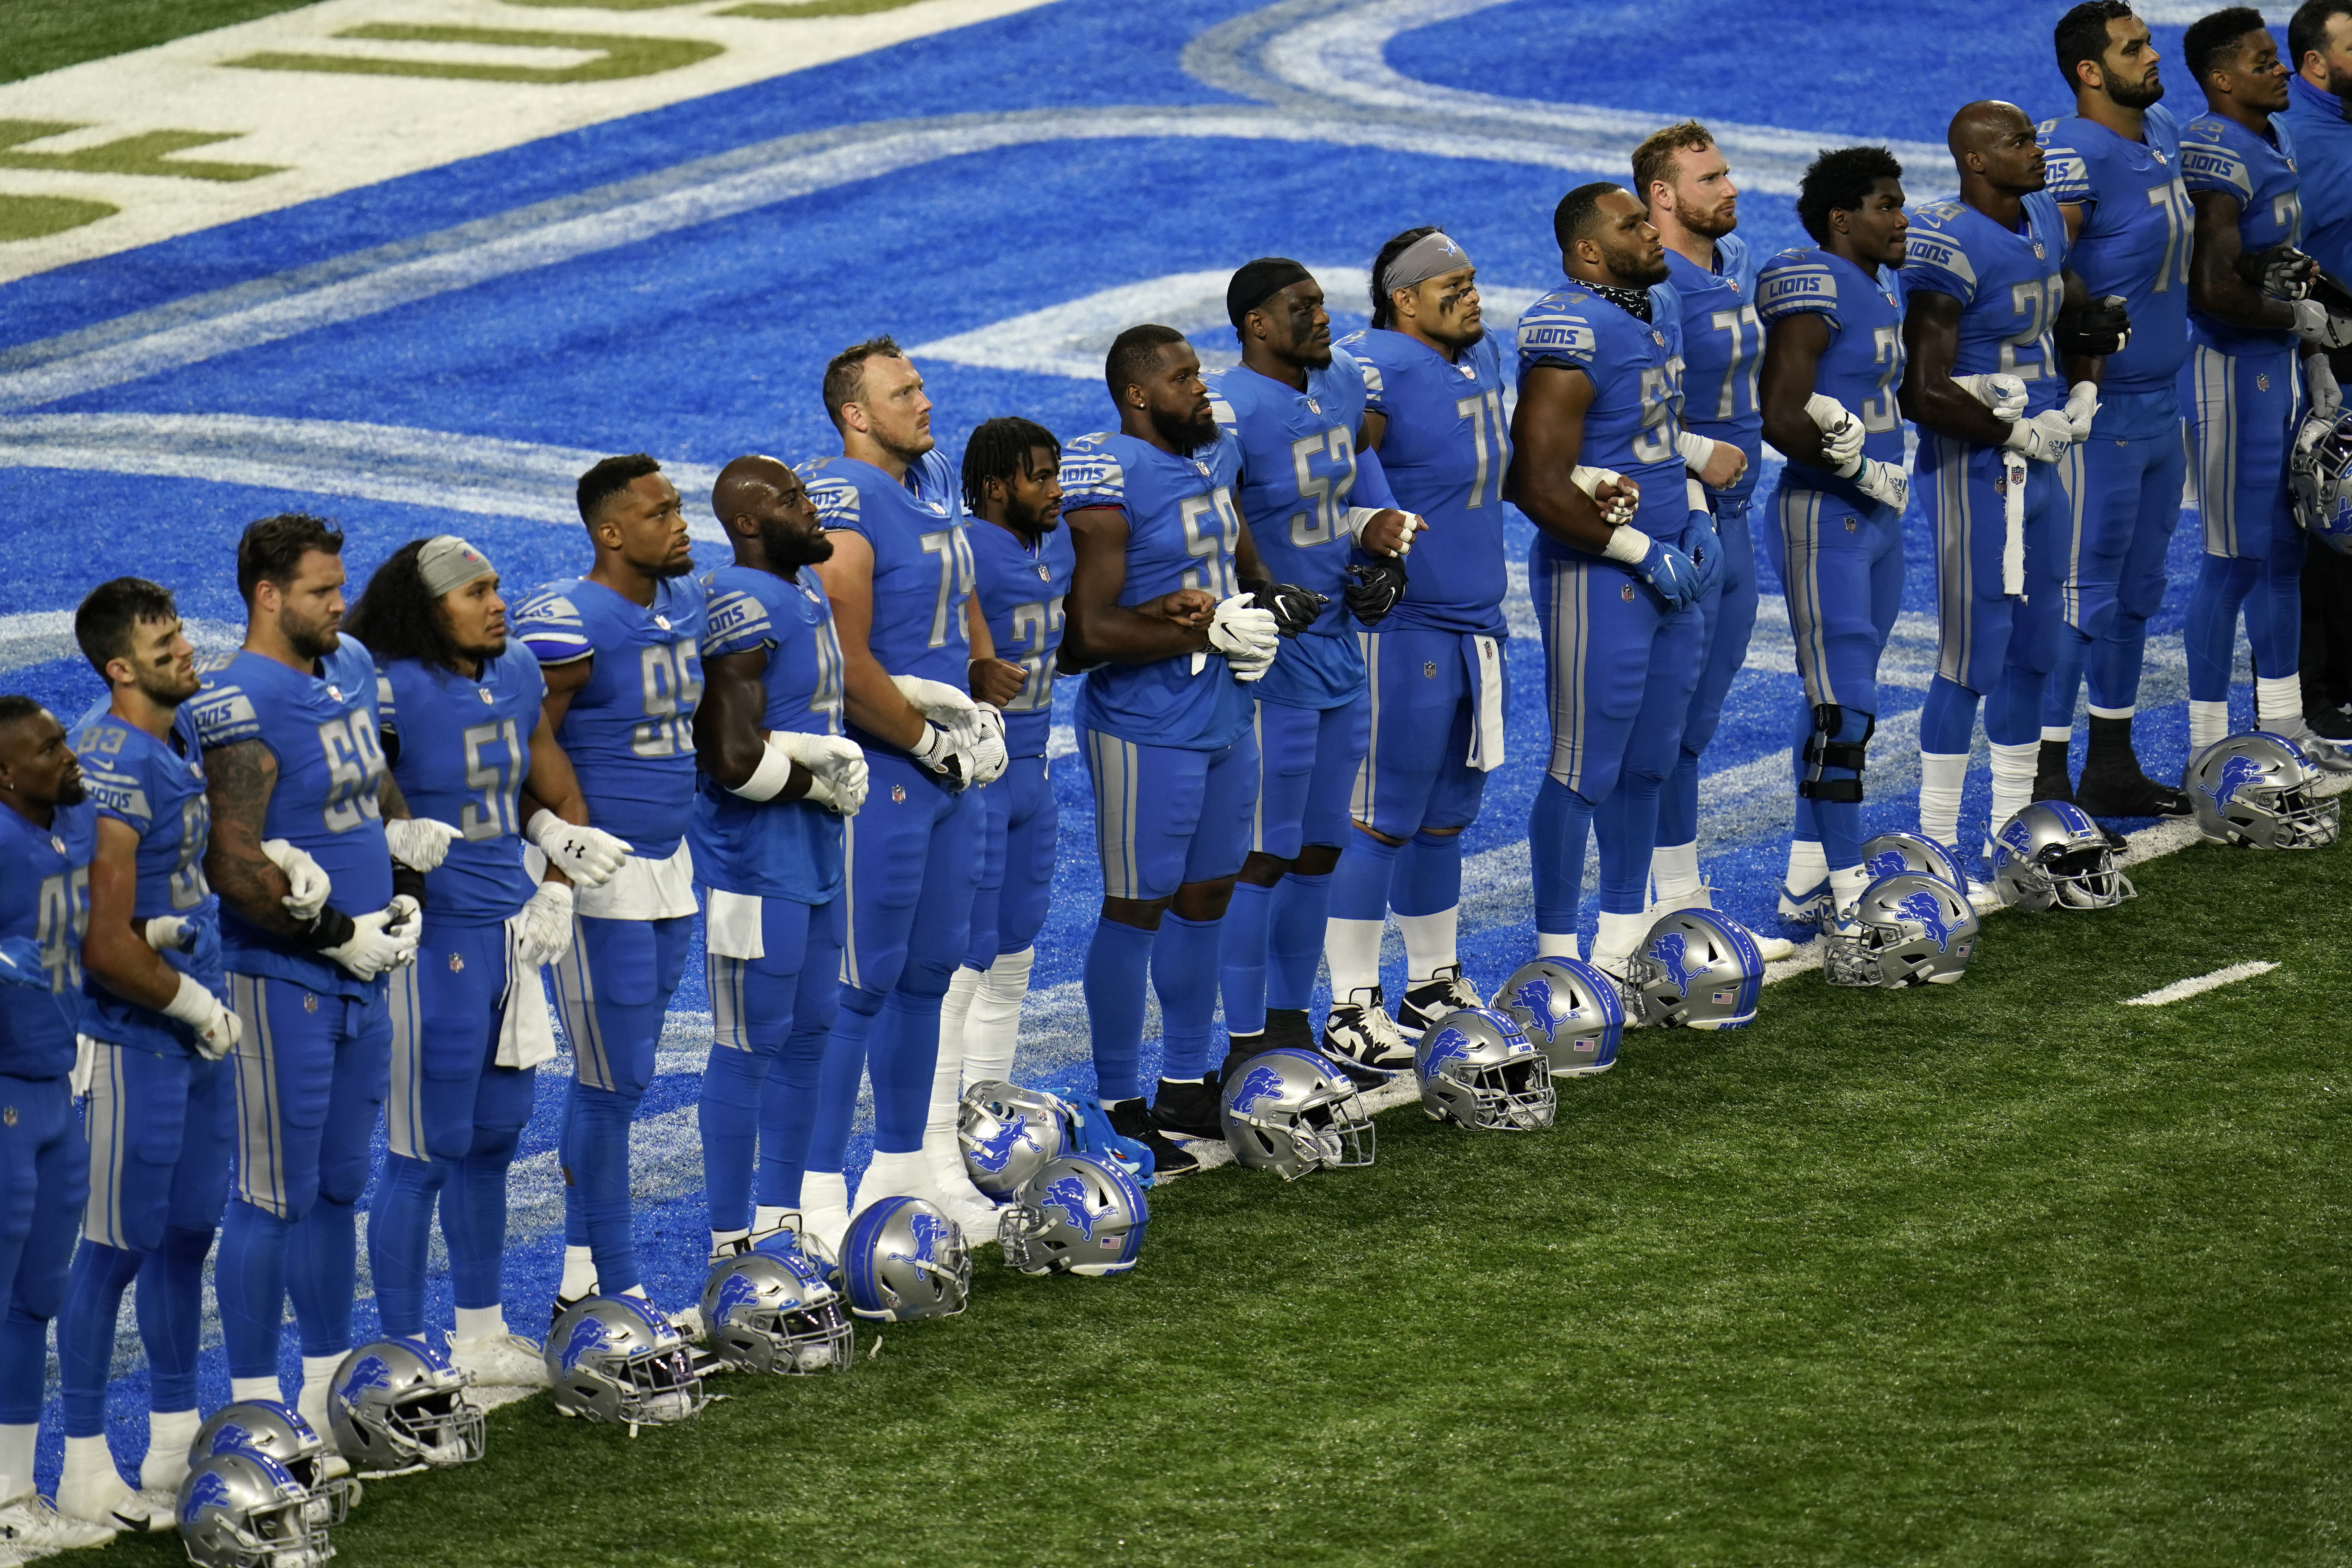 Detroit Lions players stand arm in arm during a social justice video before an NFL football game against the Chicago Bears in Detroit, Sunday, Sept. 13, 2020. (AP Photo/Paul Sancya)